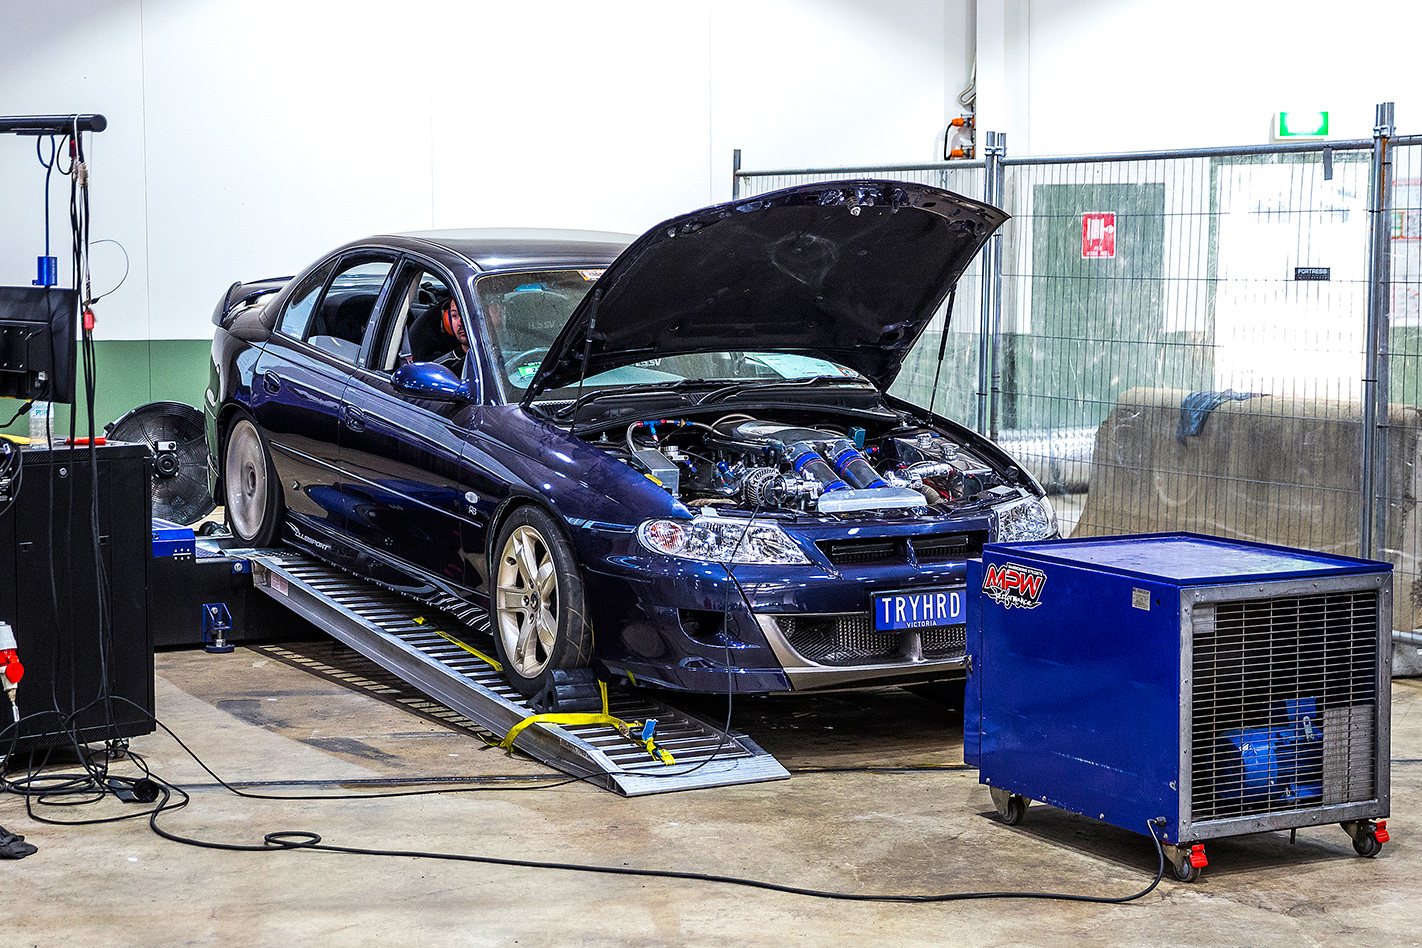 TRYHRD Commodore on dyno